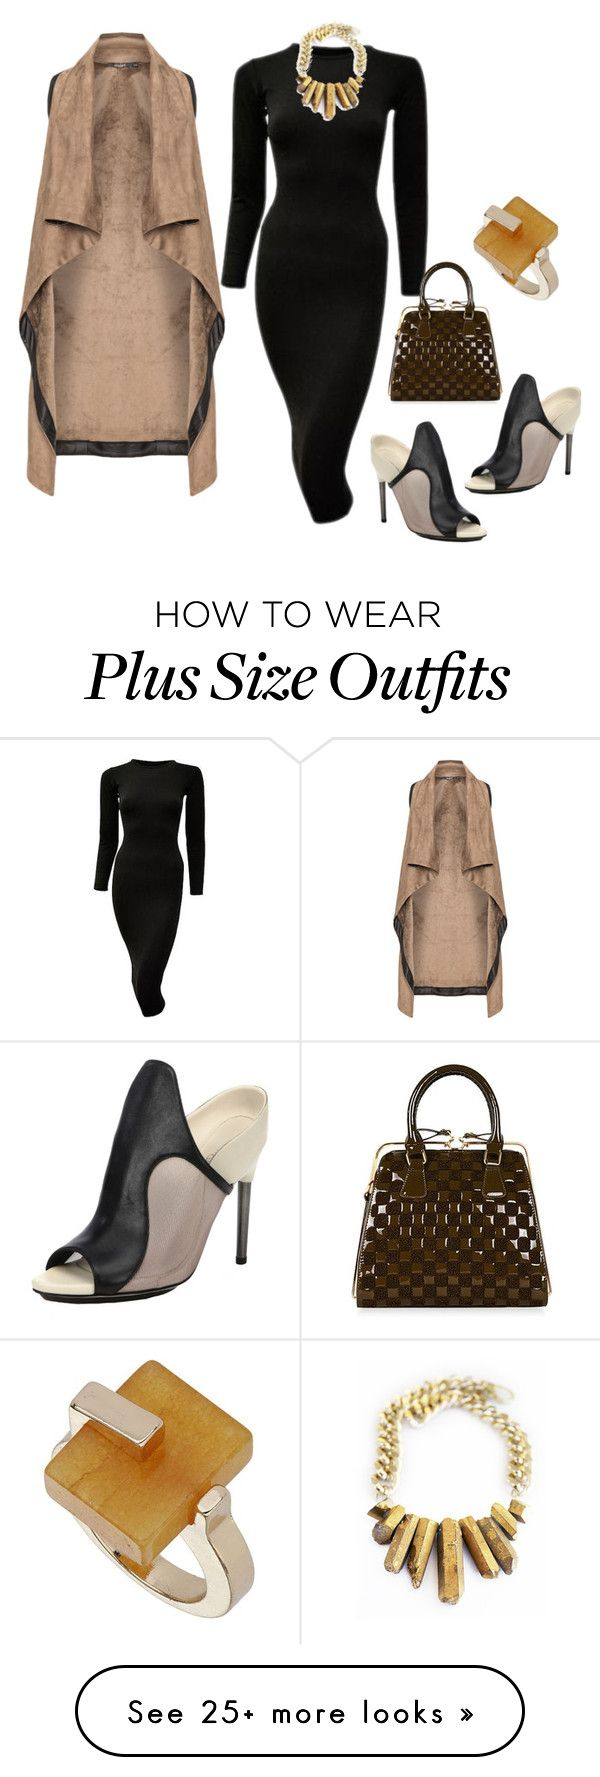 """Untitled #414"" by steflsamour on Polyvore featuring 3.1 Phillip Lim, Dorothy Perkins, Mat, women's clothing, women's fashion, women, female, woman, misses and juniors"